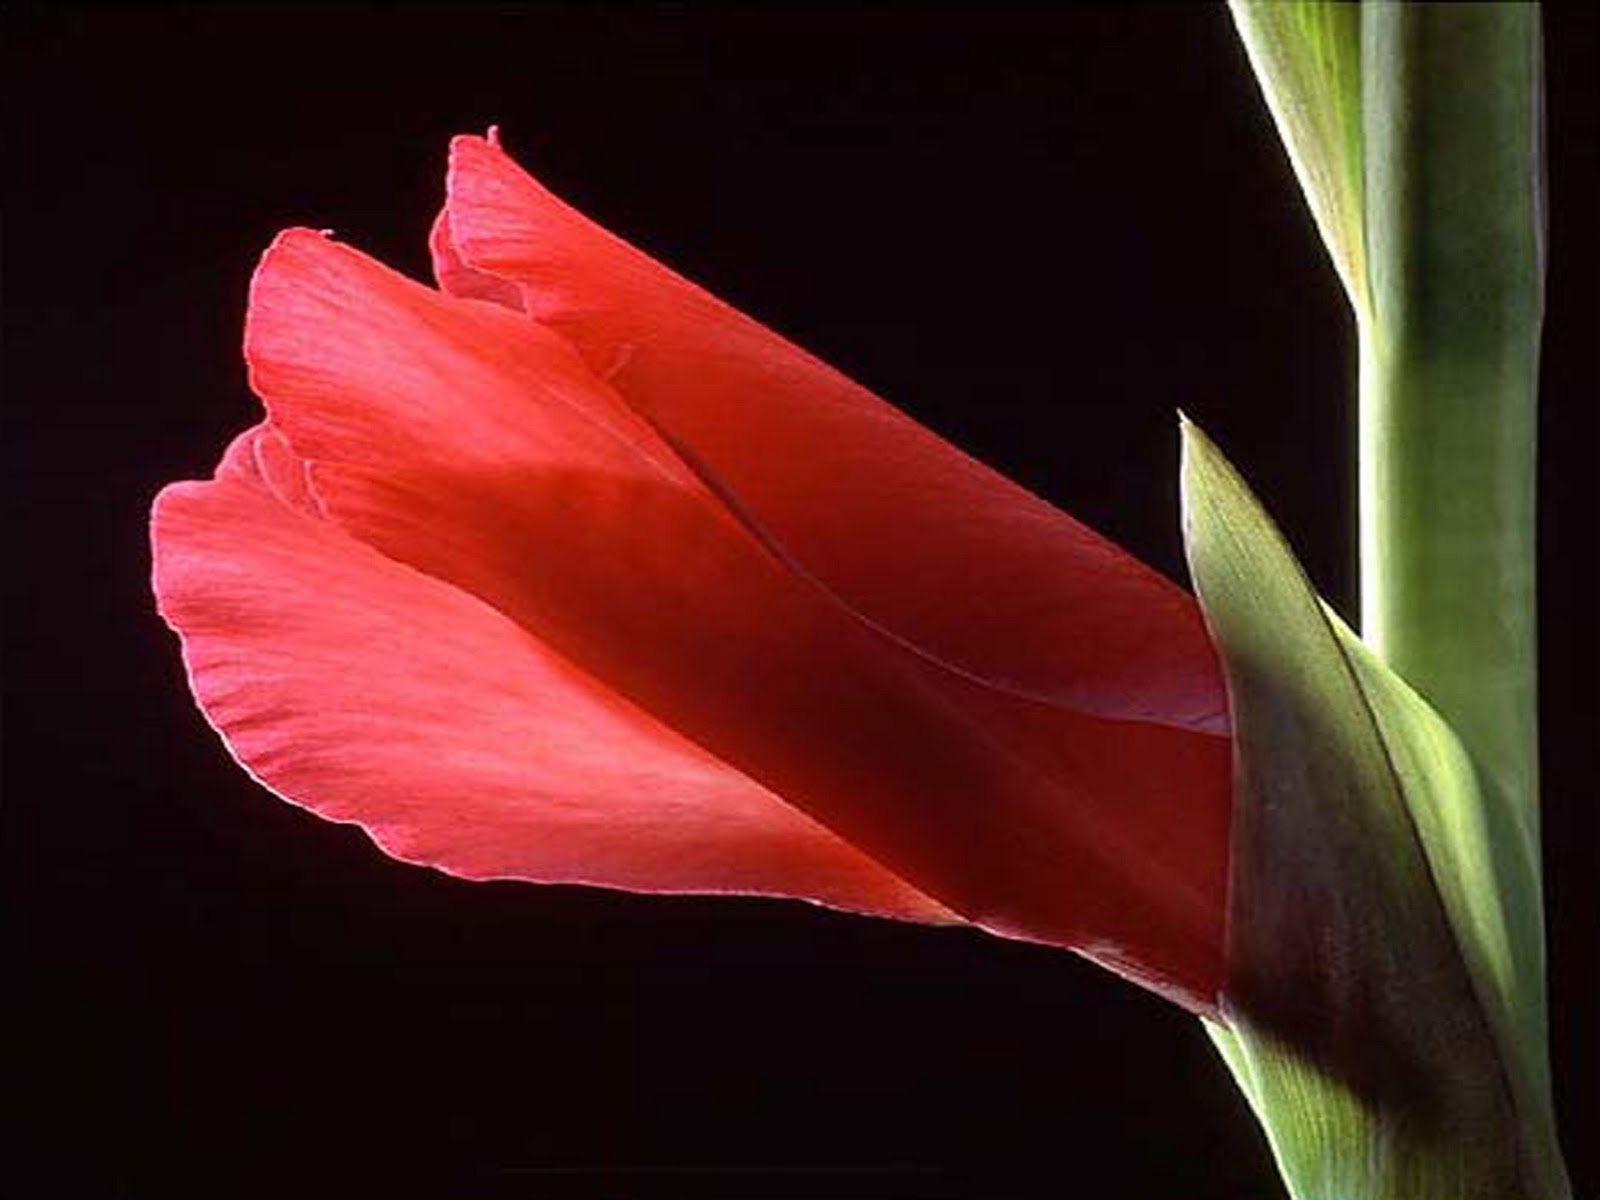 Gladiolus flower pictures Galllery